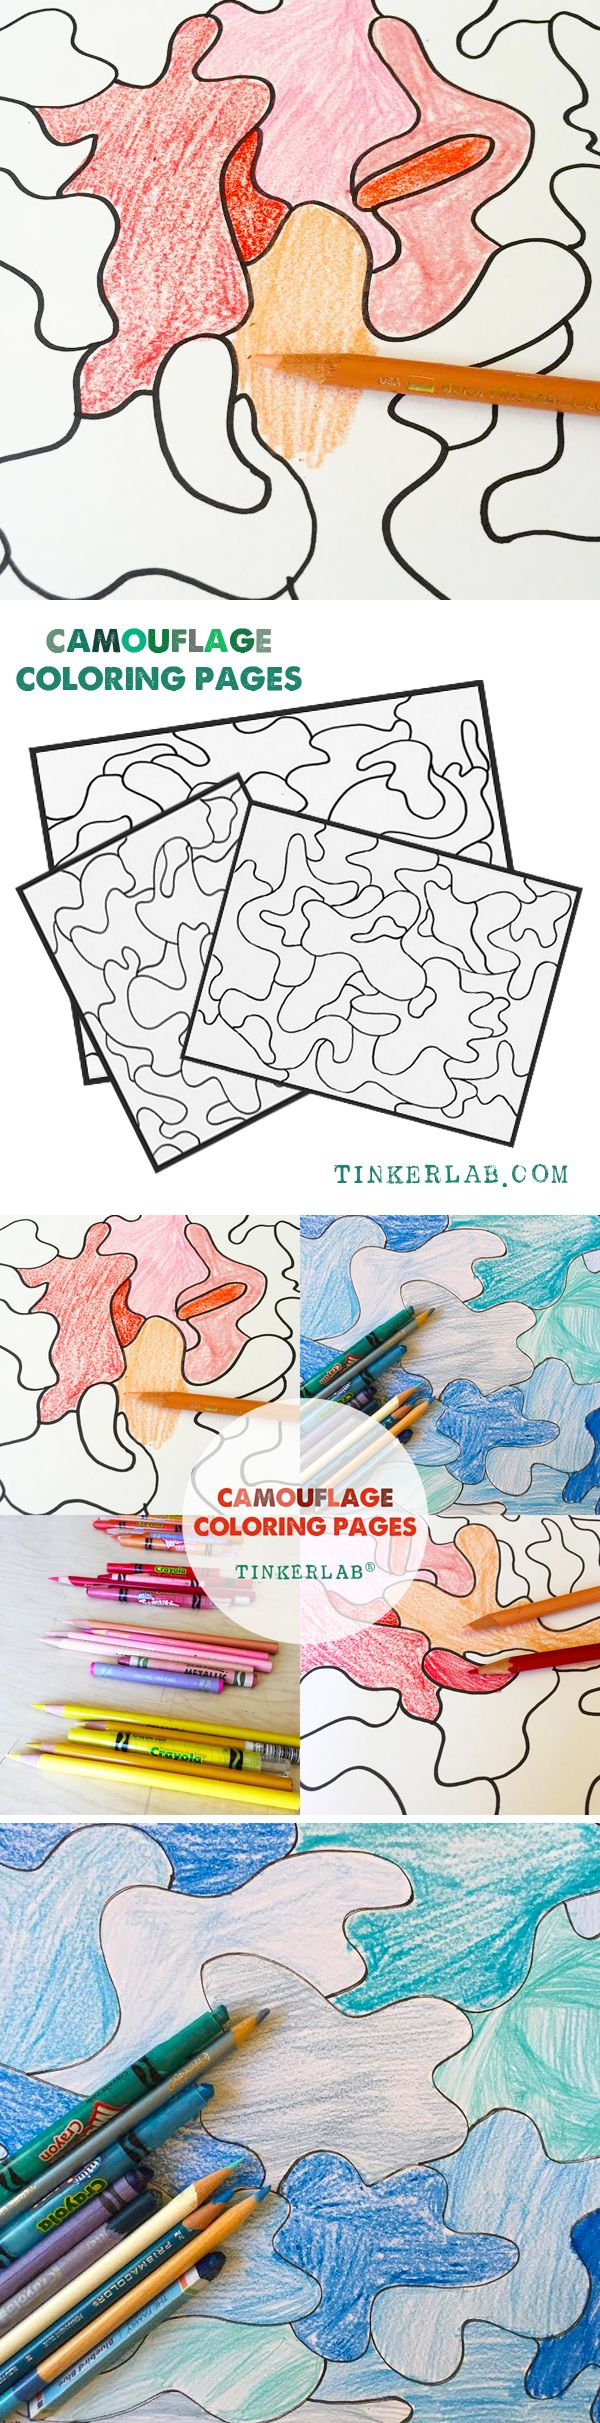 Camouflage Coloring Pages | A Creative Table Prompt